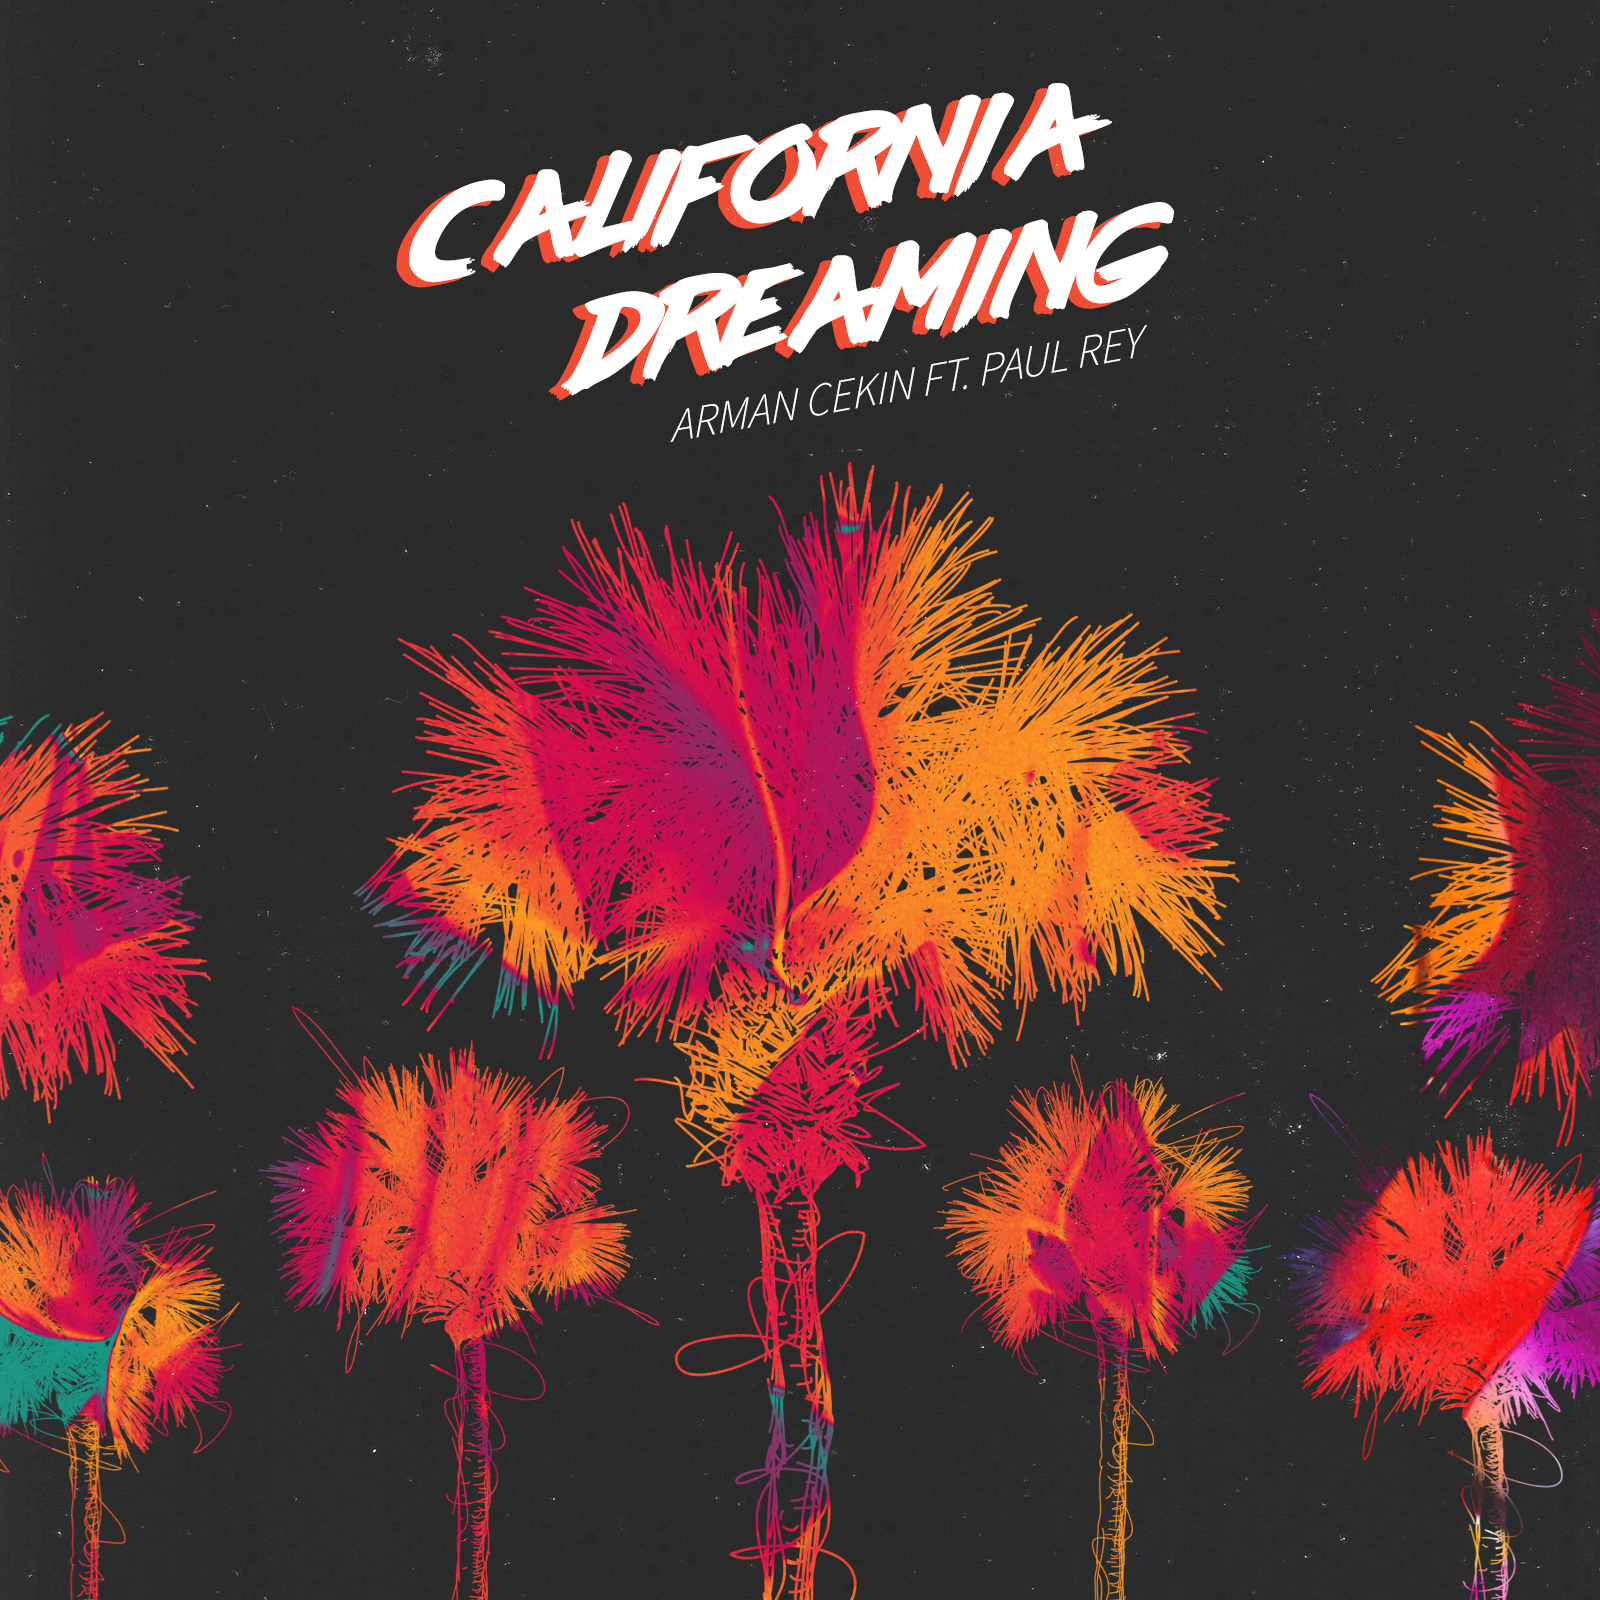 California-Dreaming Artwork